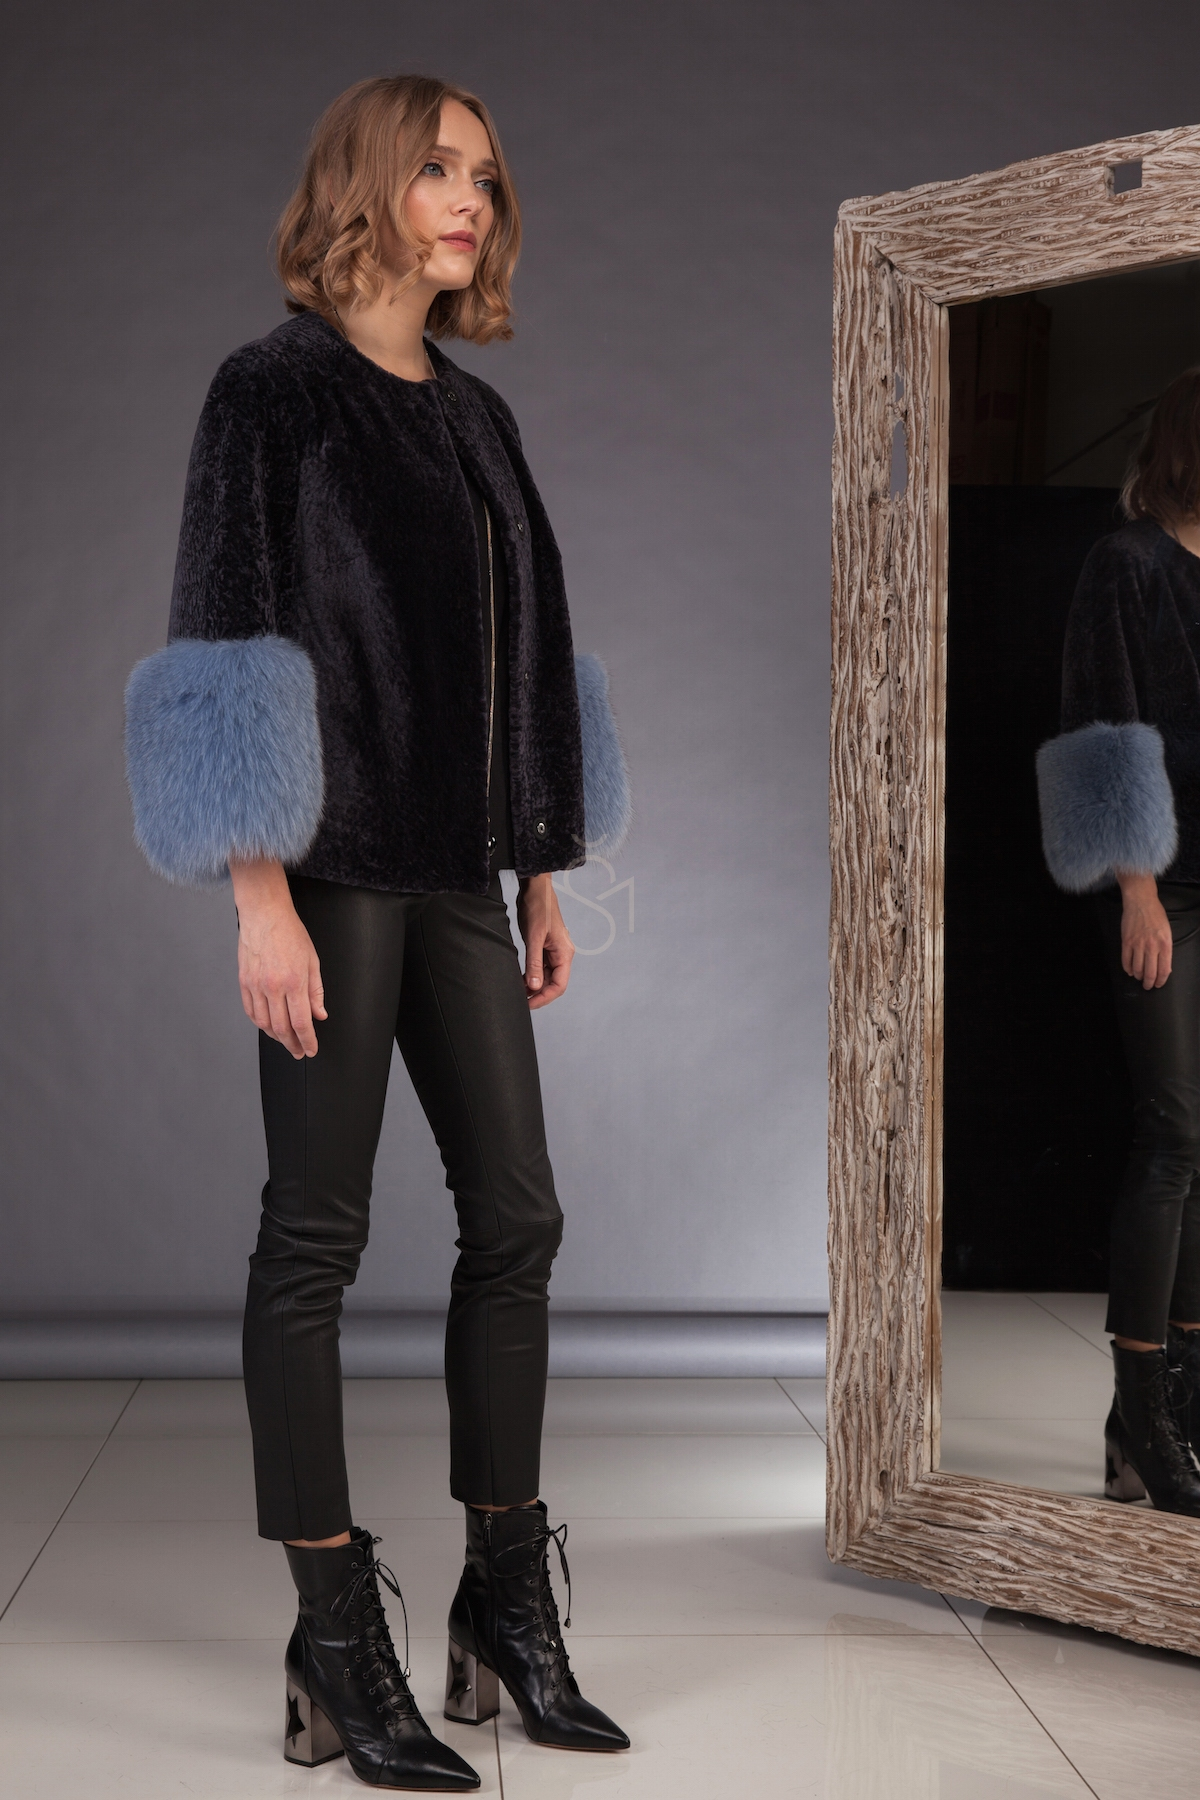 Sheepskin coat with fox fur sleeves made by SILTA MADA fur studio in Vilnius